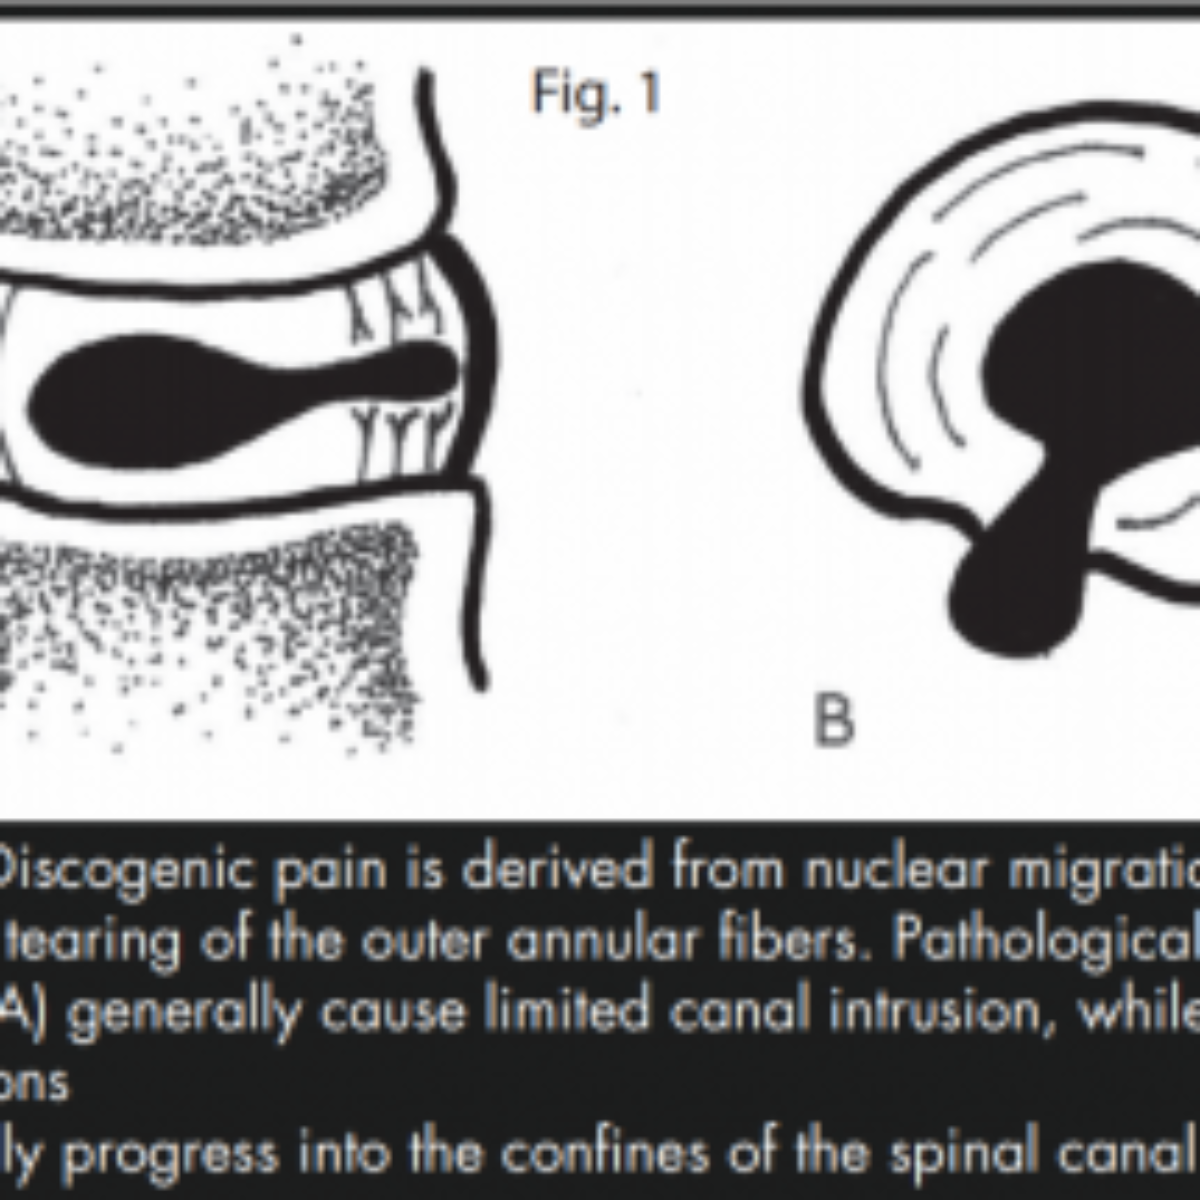 TREATMENT OF AN L5/S1 EXTRUDED DISC HERNIATION: A CASE REPORT